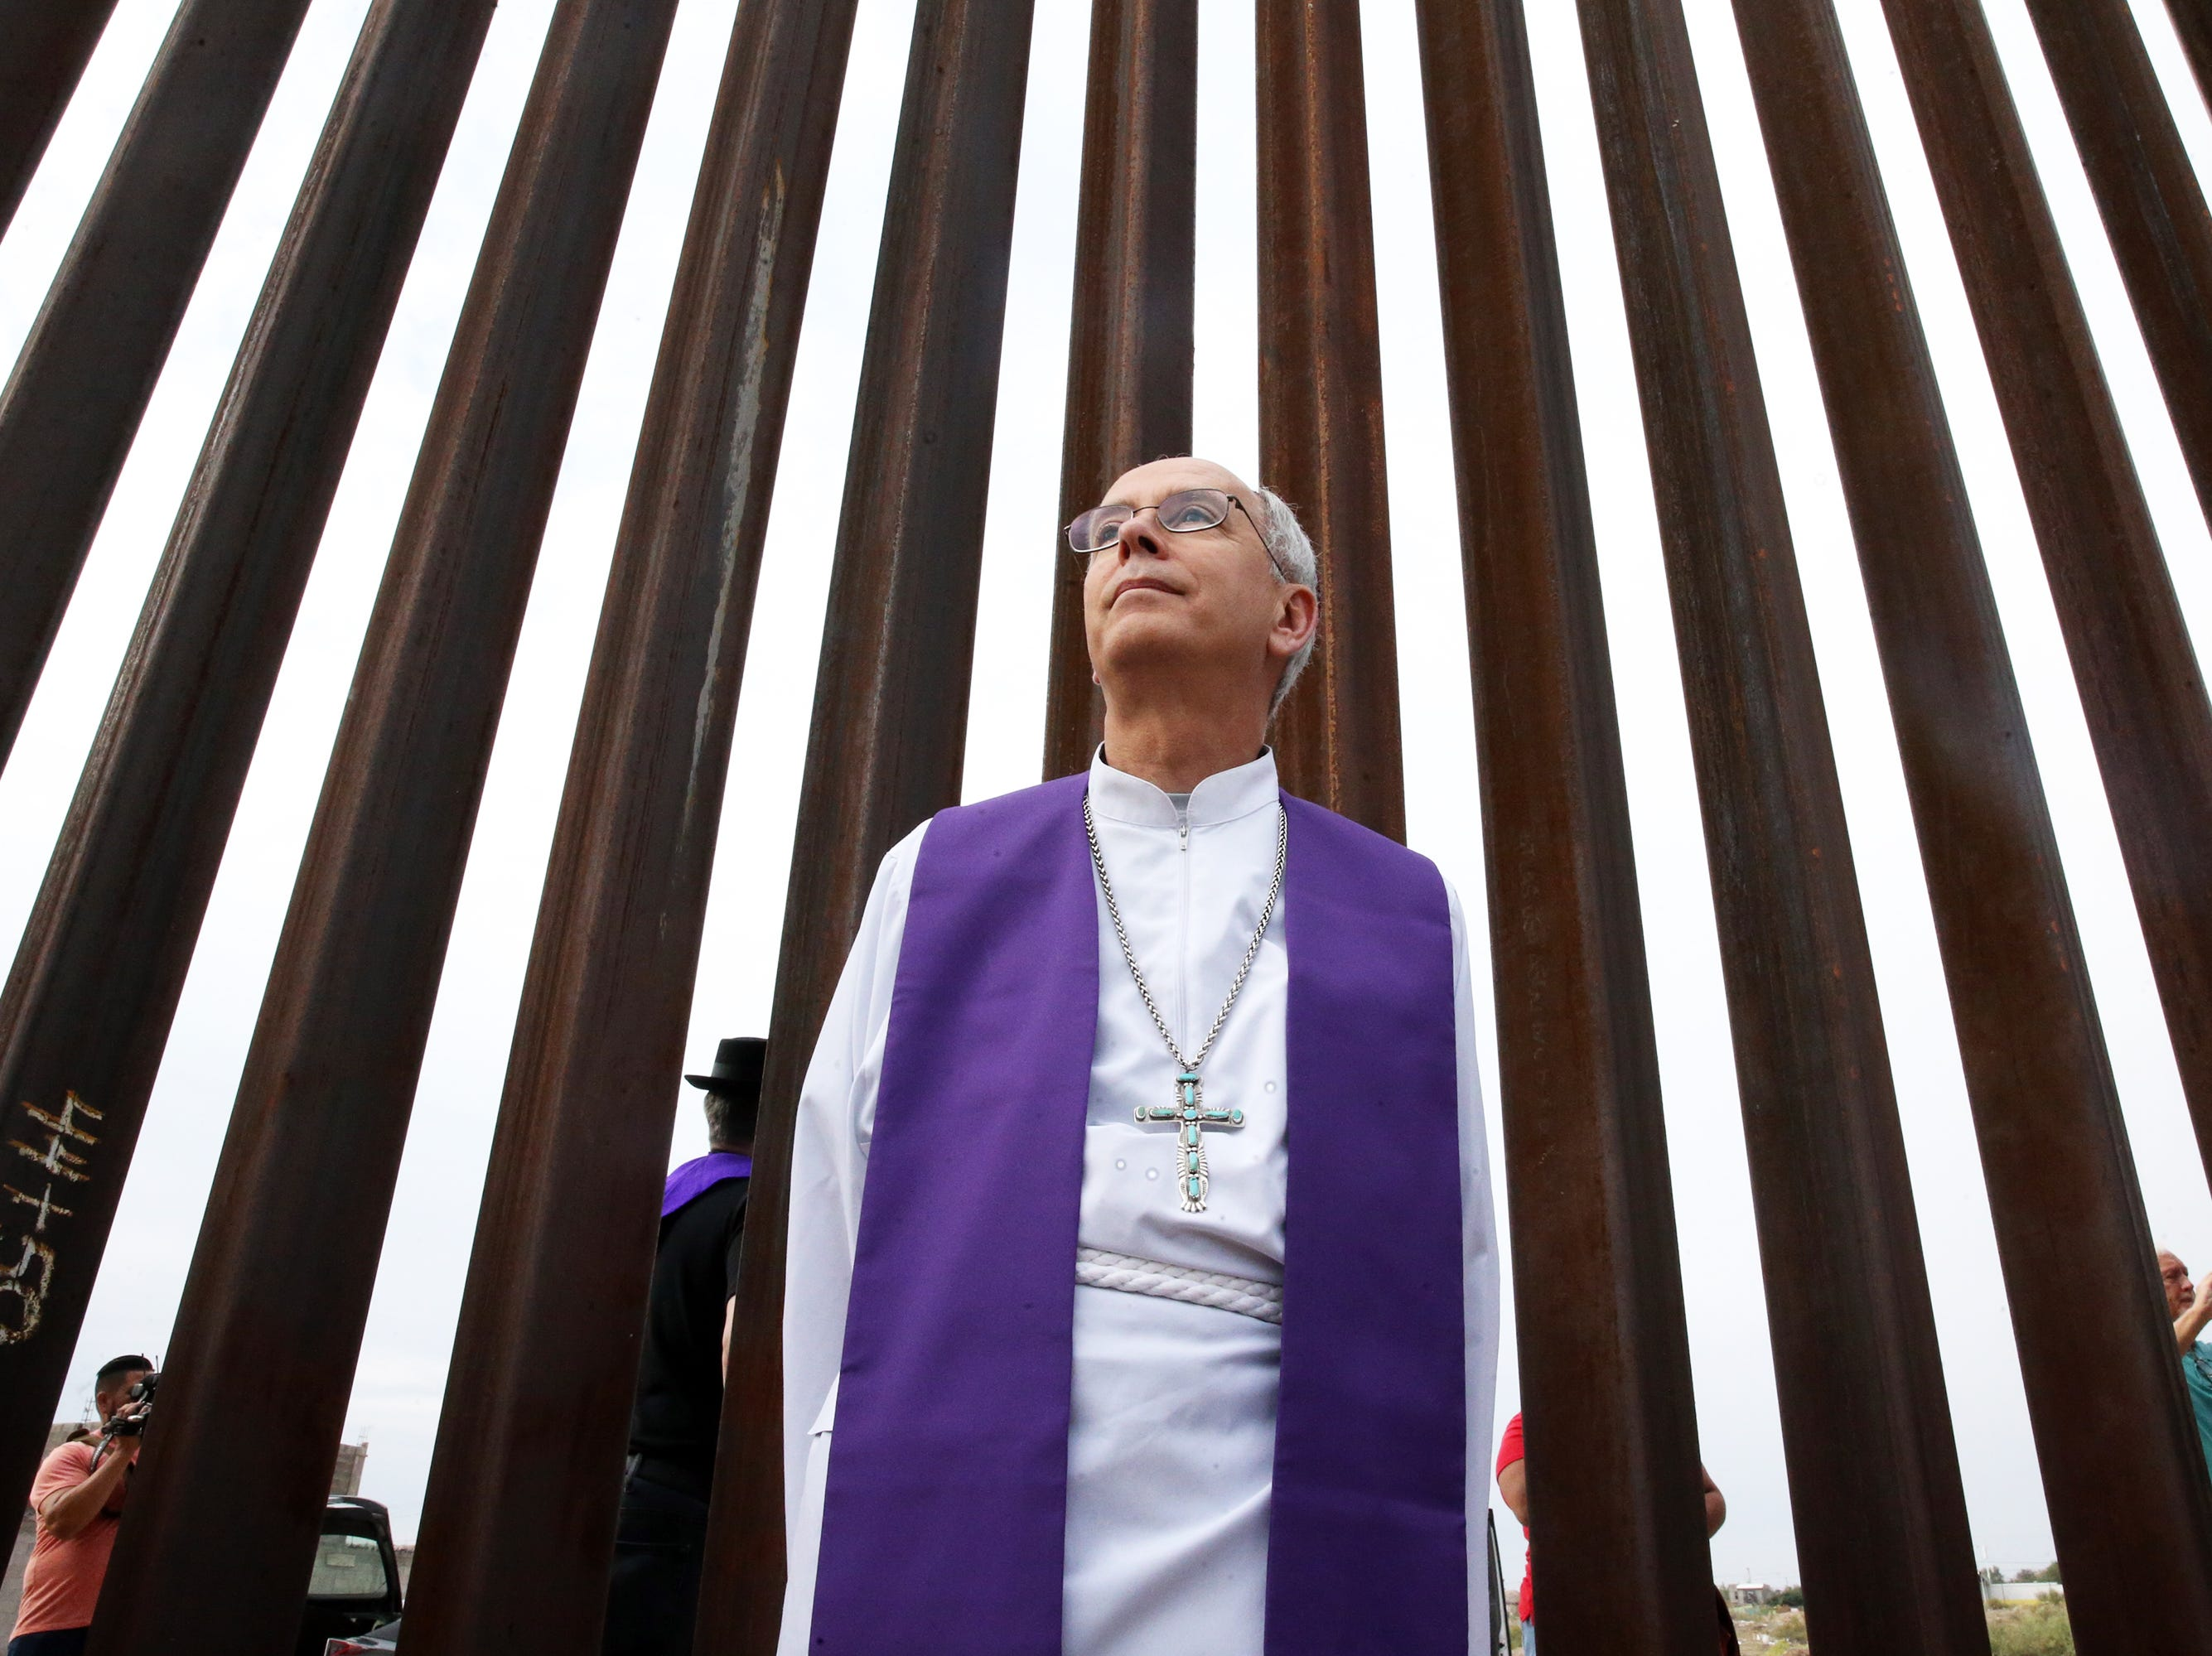 El Paso Catholic Bishop Mark Seitz stands along side the border fence at Sunland Park, N.M. during a interfaith gathering of clergy, many visiting from other parts of the country where they spoke, prayed and visited with people gathered on the Juarez side.